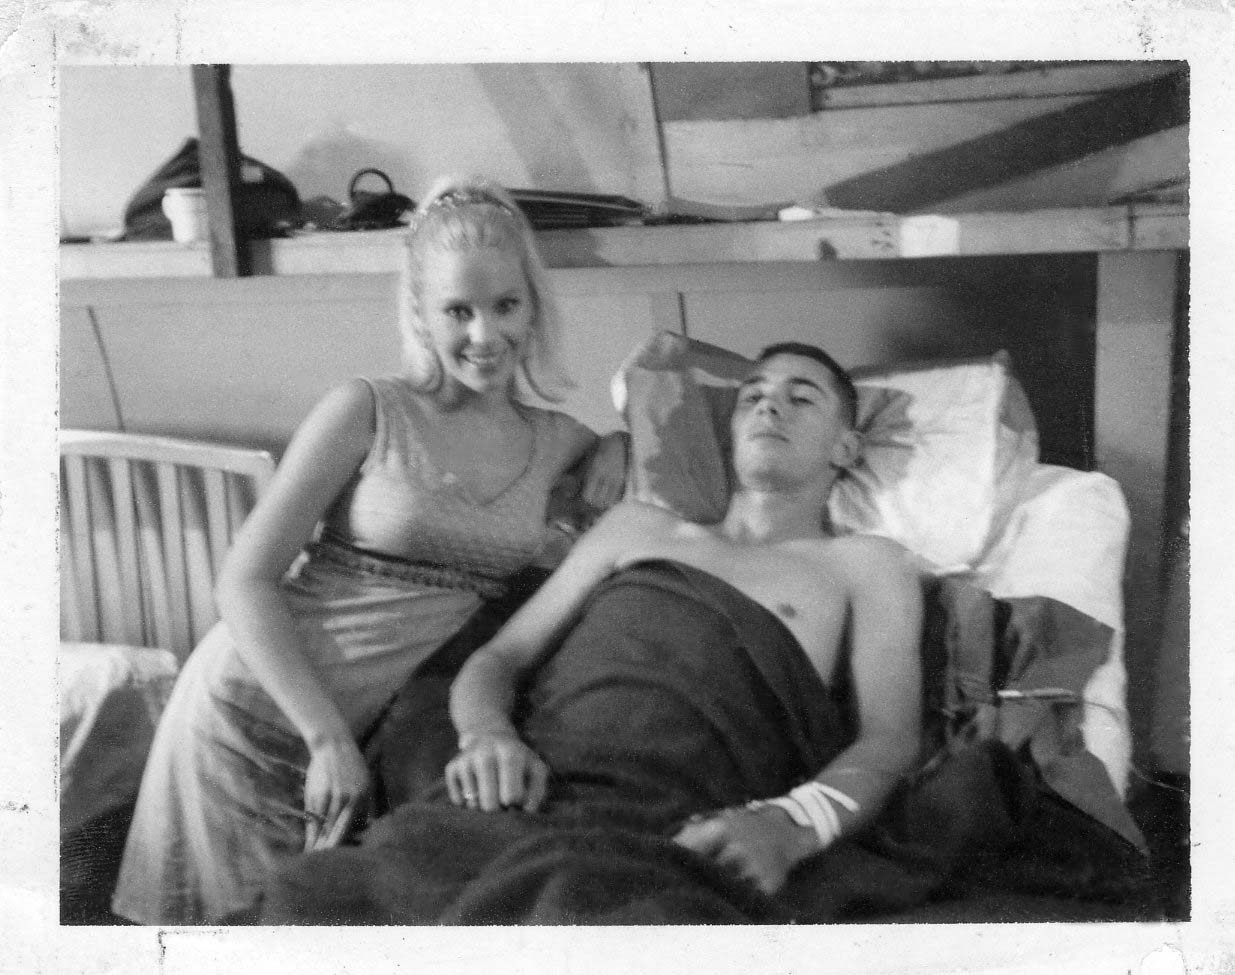 Dennis Fisher with visiting USO girl Mary Grover after being wounded